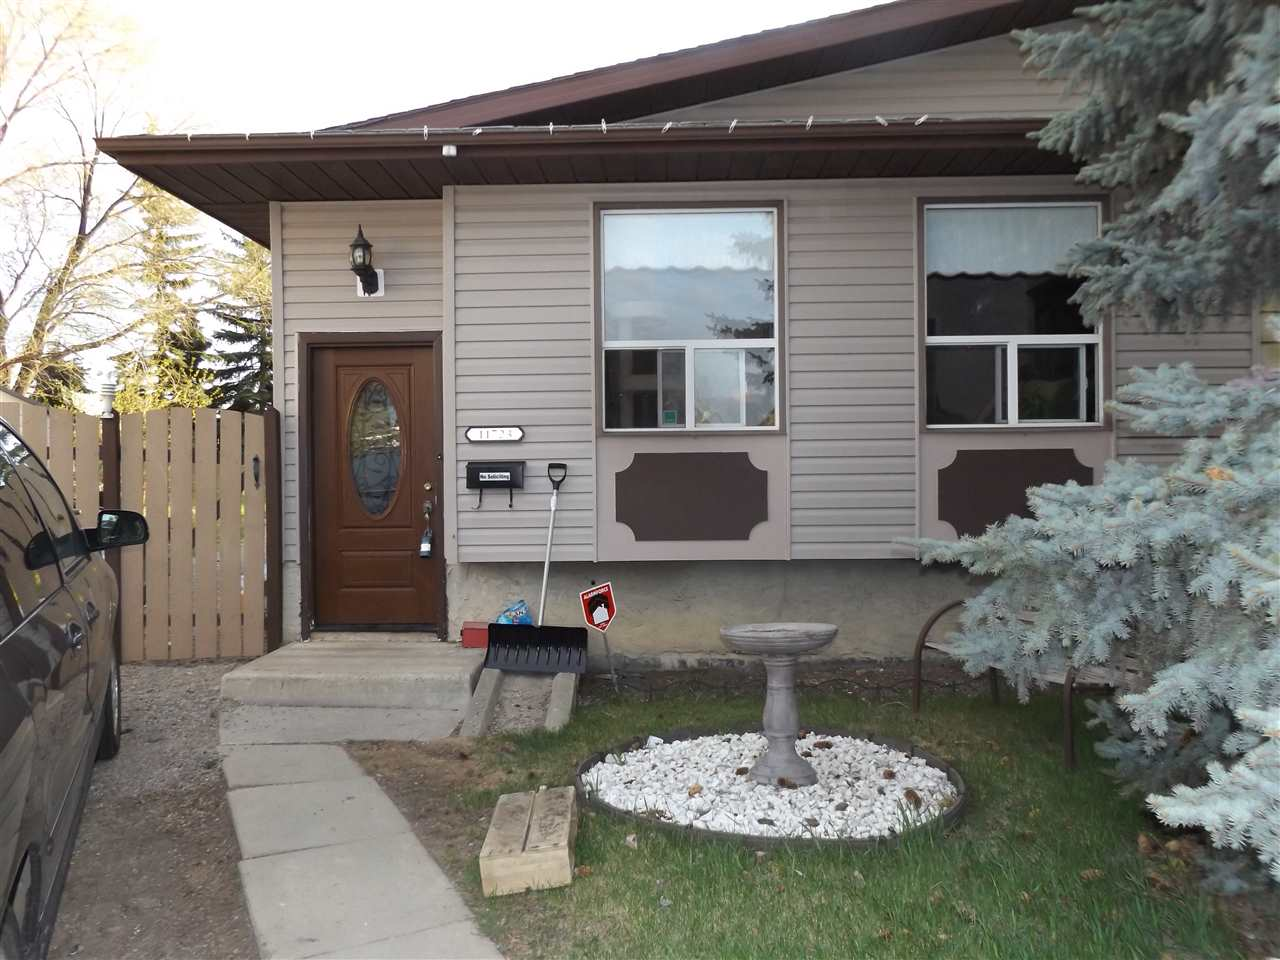 Main Photo: 11723 138 Avenue in Edmonton: Zone 27 House Half Duplex for sale : MLS® # E4064966